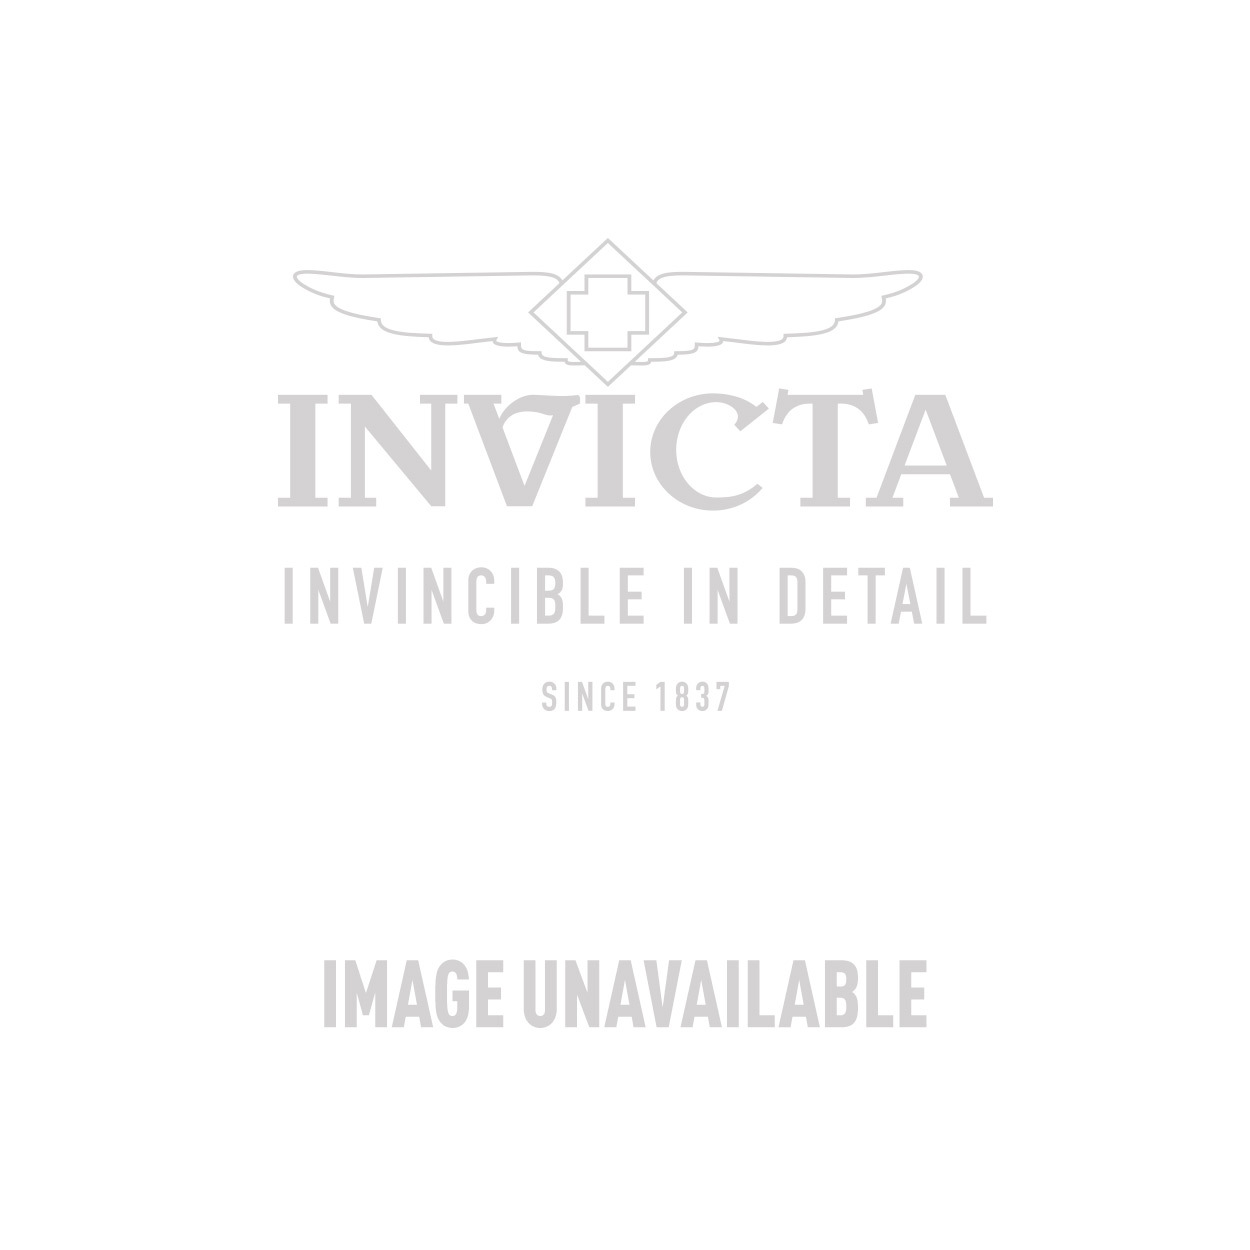 Invicta Mens Rose Gold Watch Images Prices Of Casio